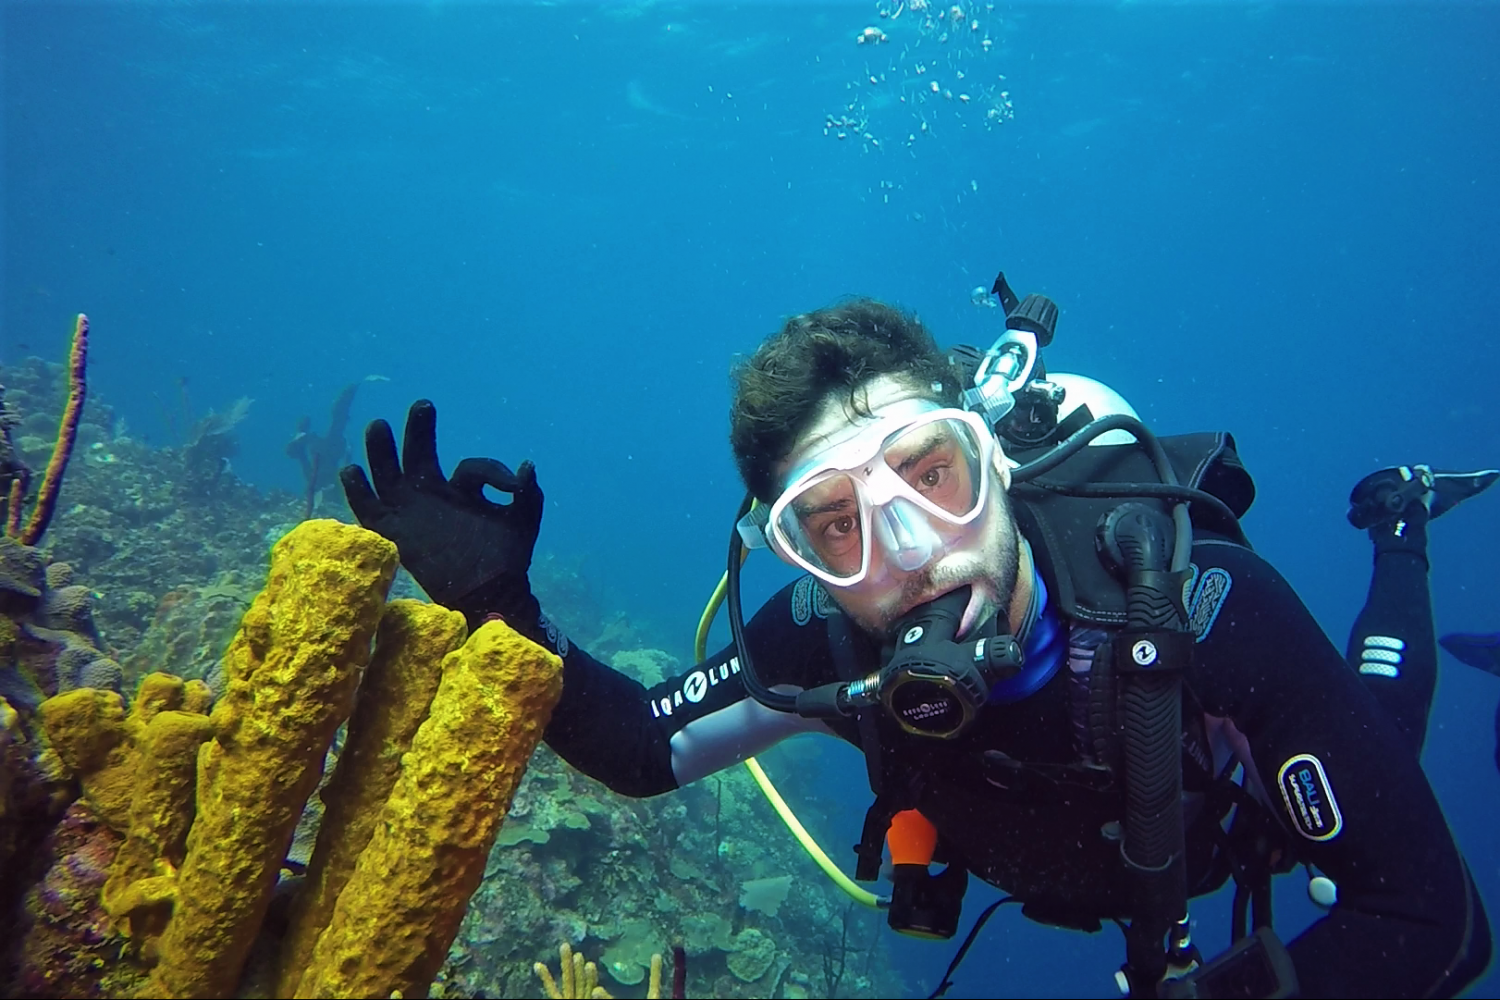 Diving with ScubaCaribe in Punta Cana